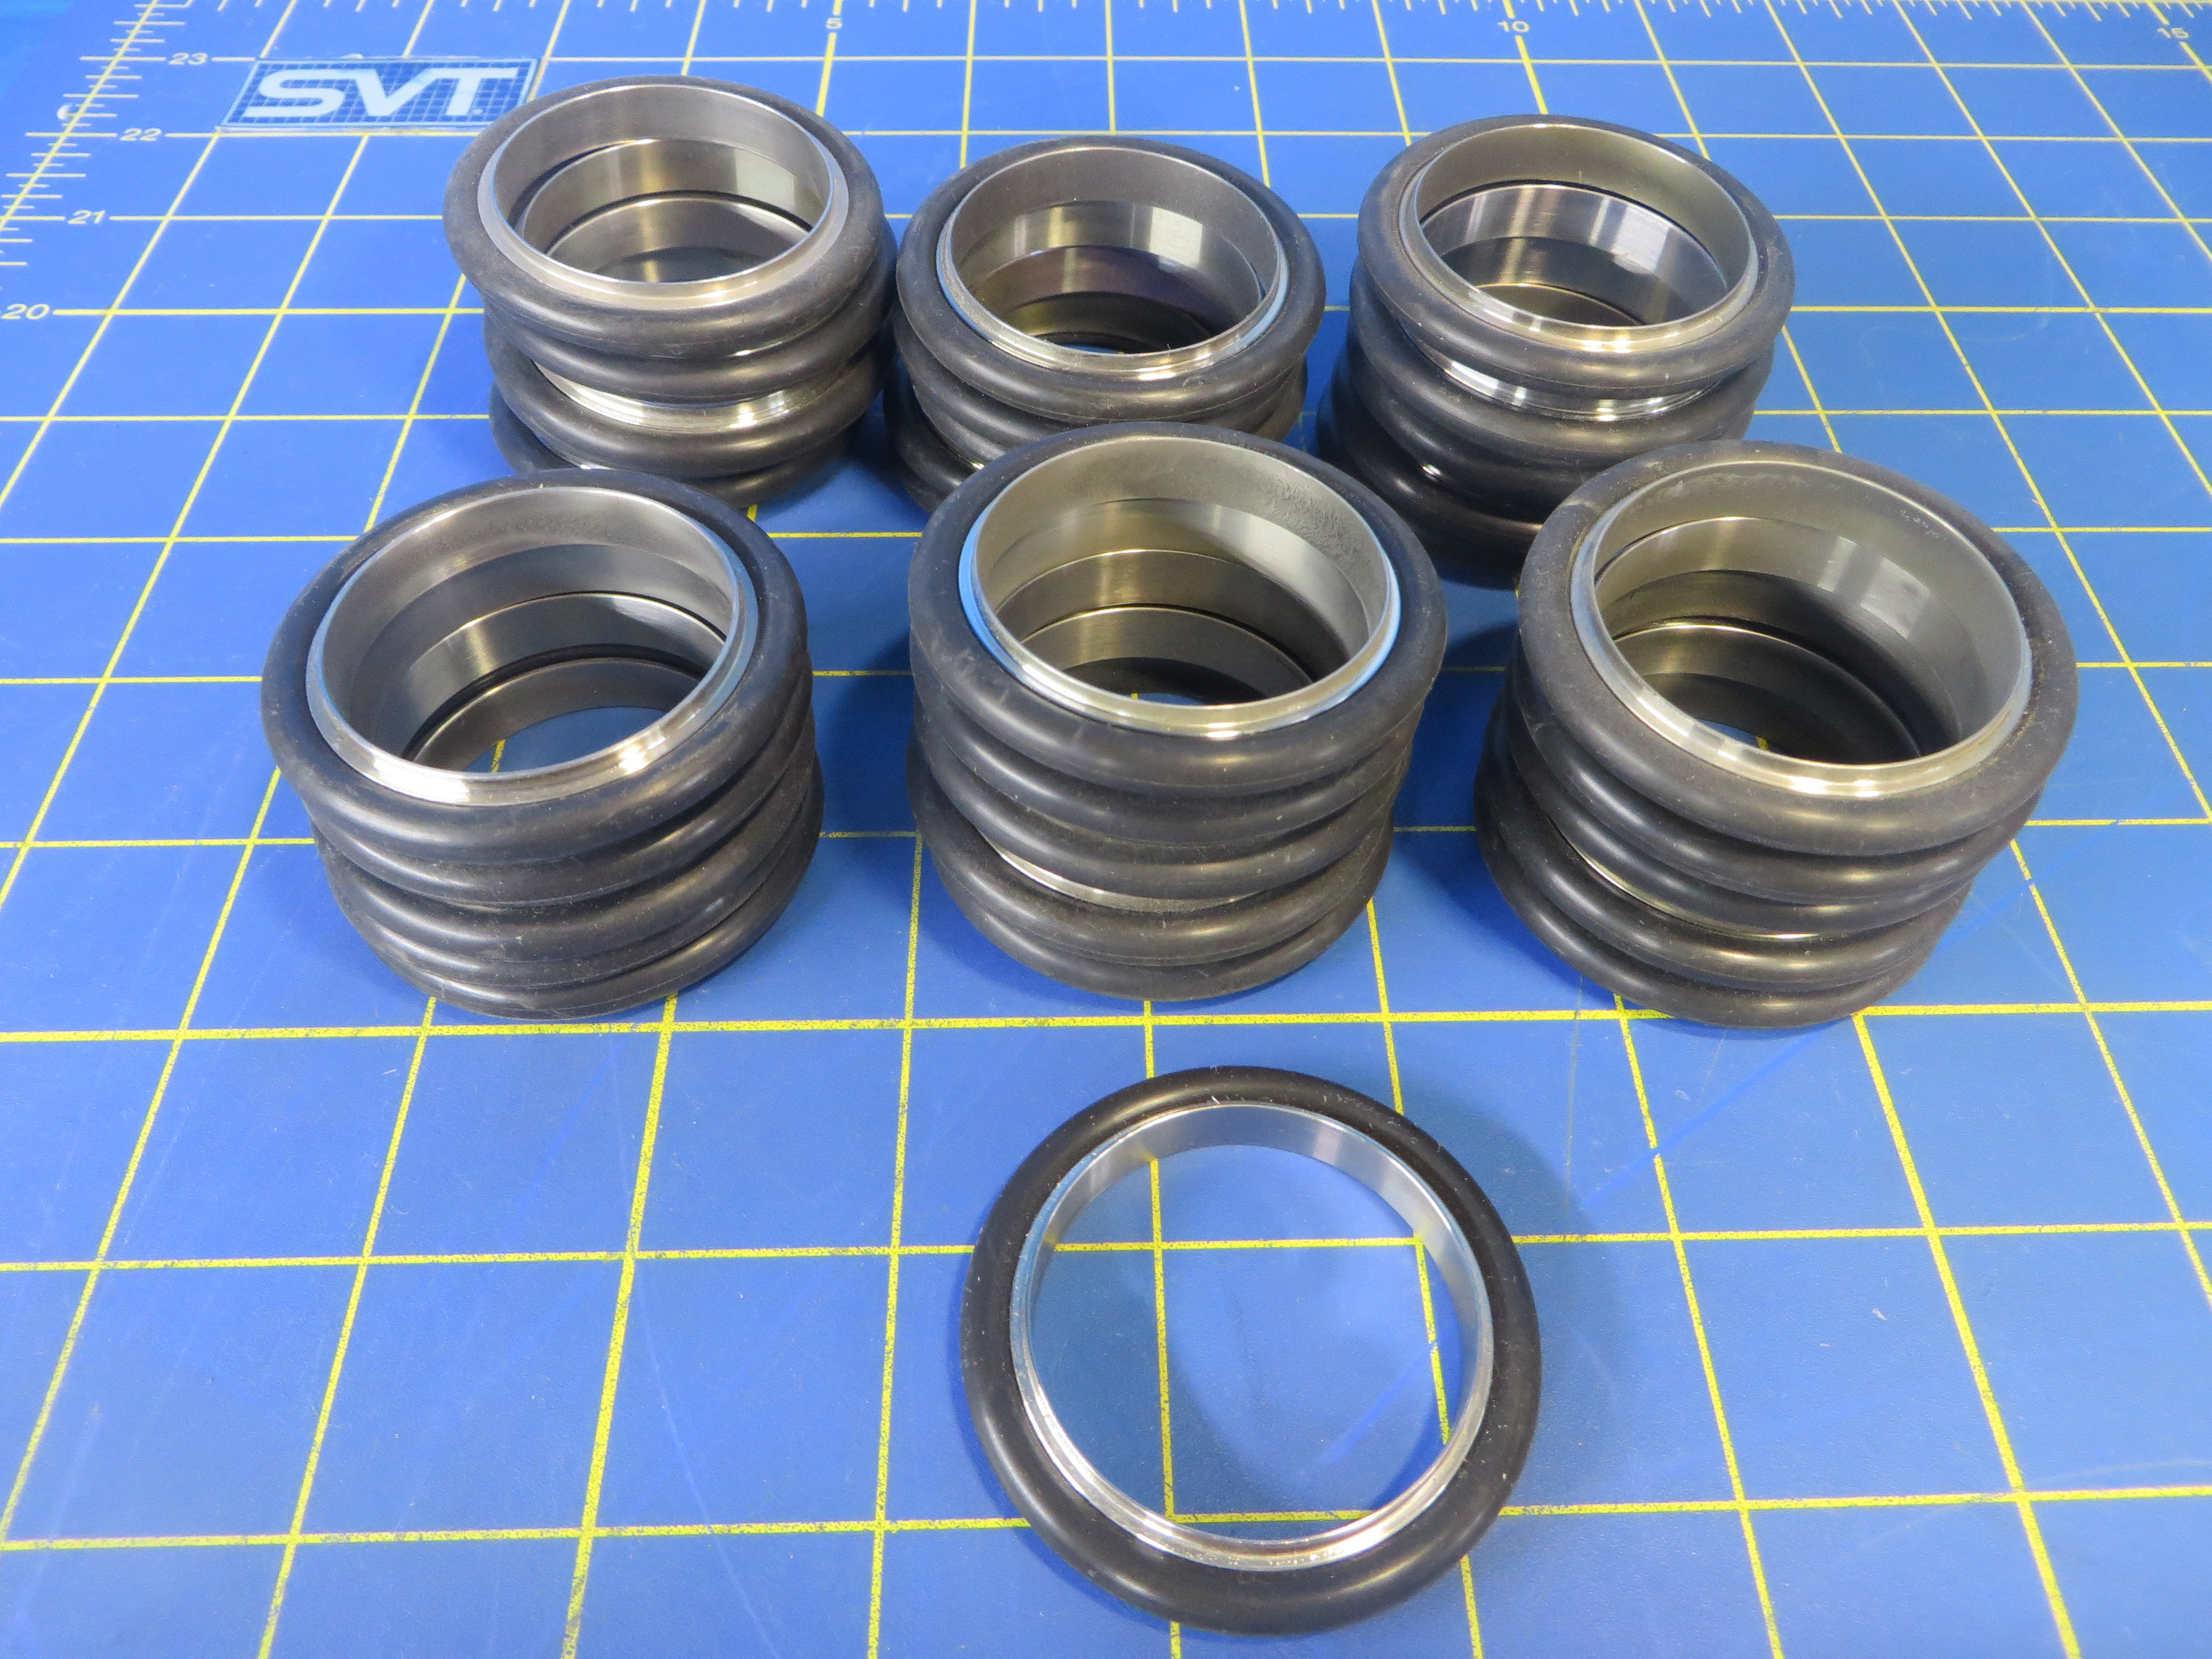 MKS NW40 Seal / Centering Ring - Lot of 30